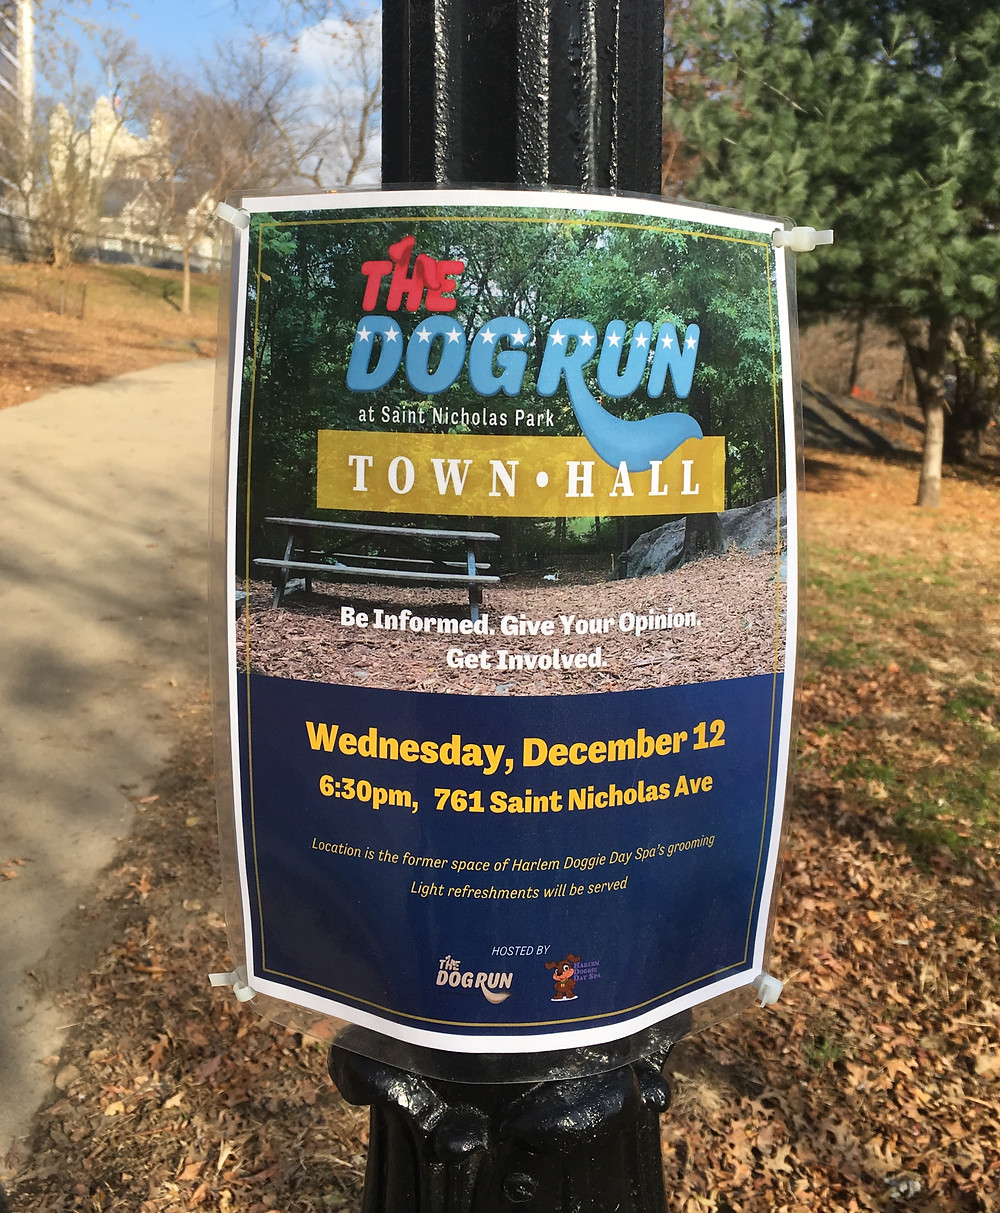 The flyer for The Dog Run at St. Nicholas Park town hall